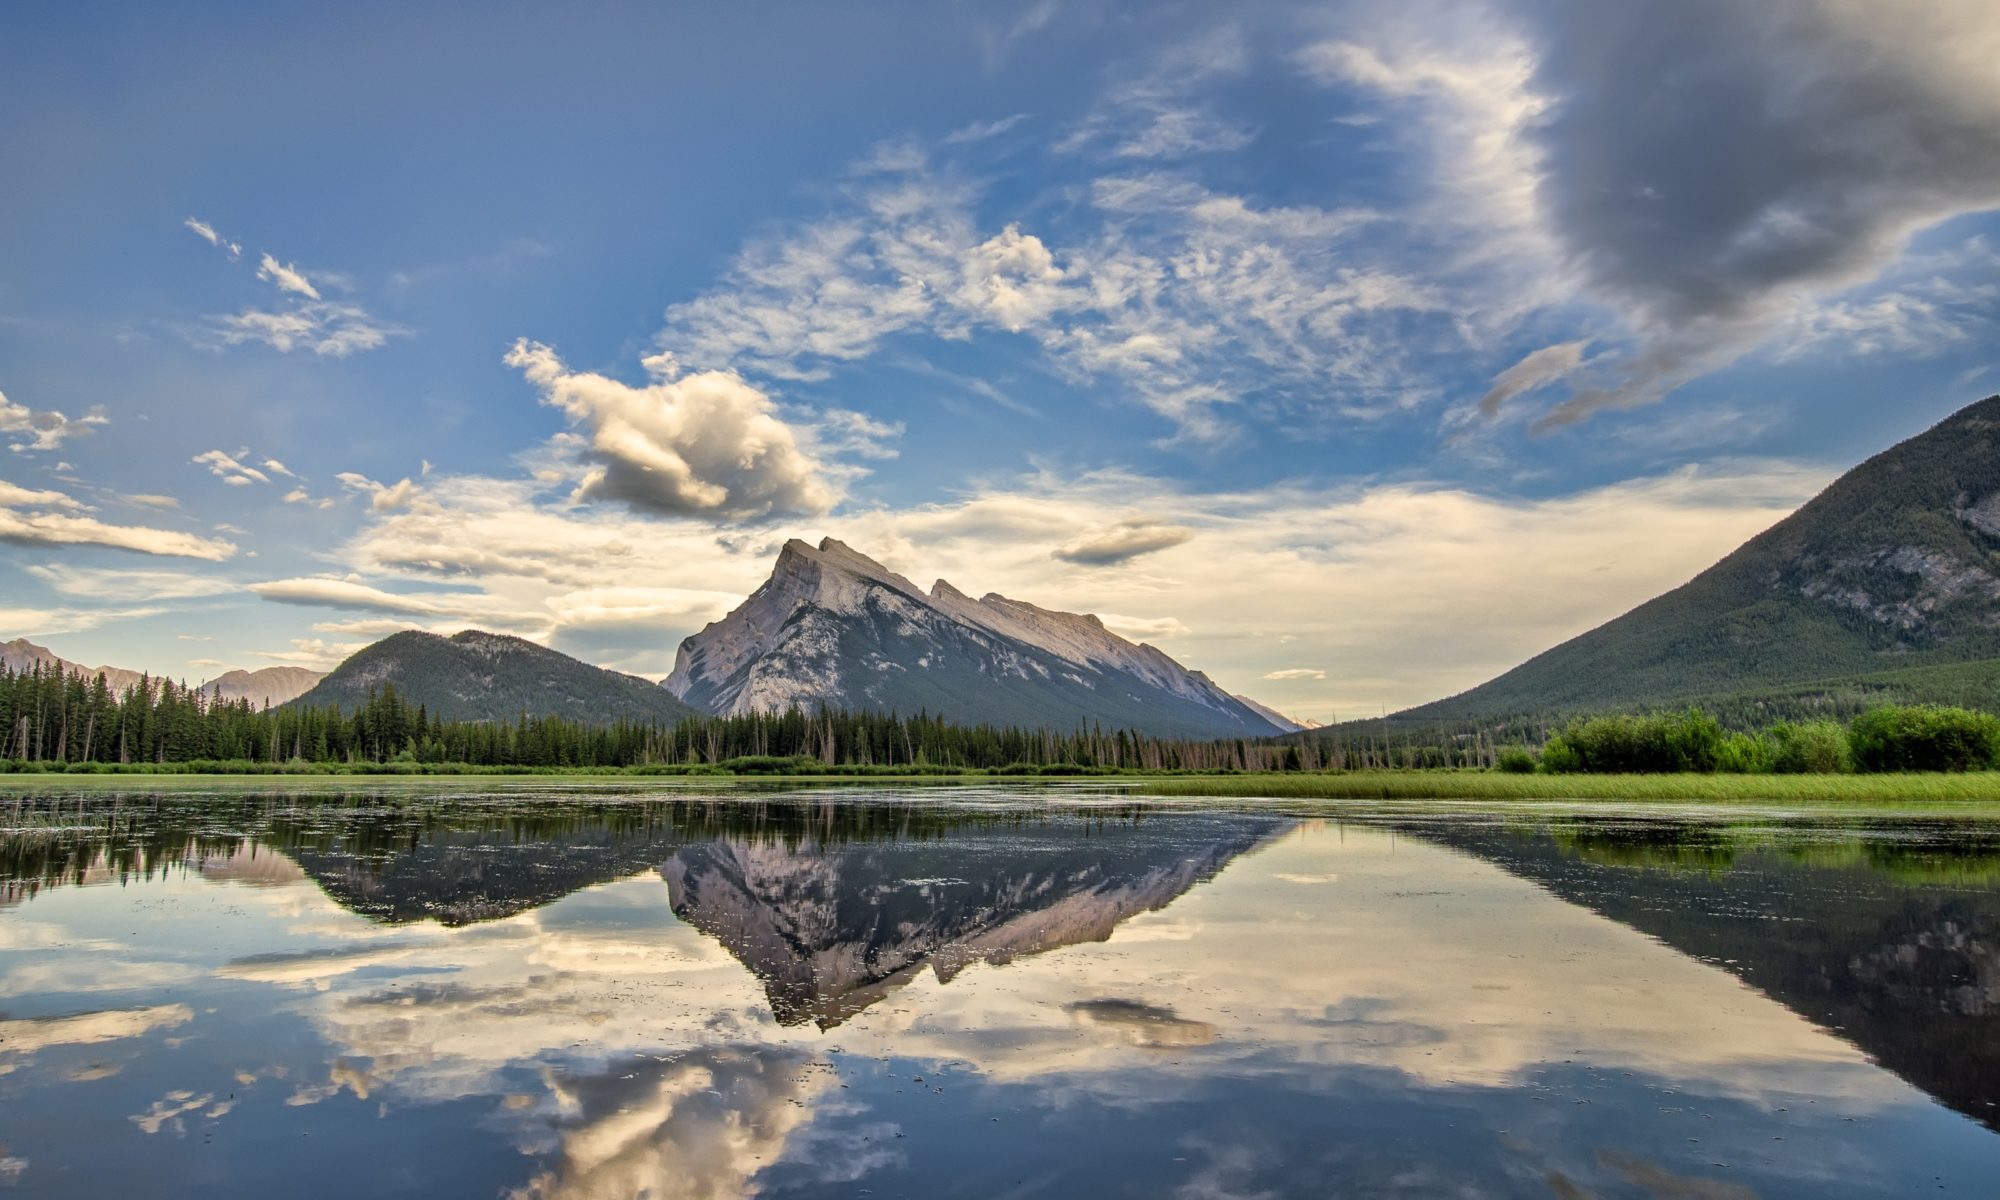 Mountain range and cloudy sky reflecting on a calm body of water.